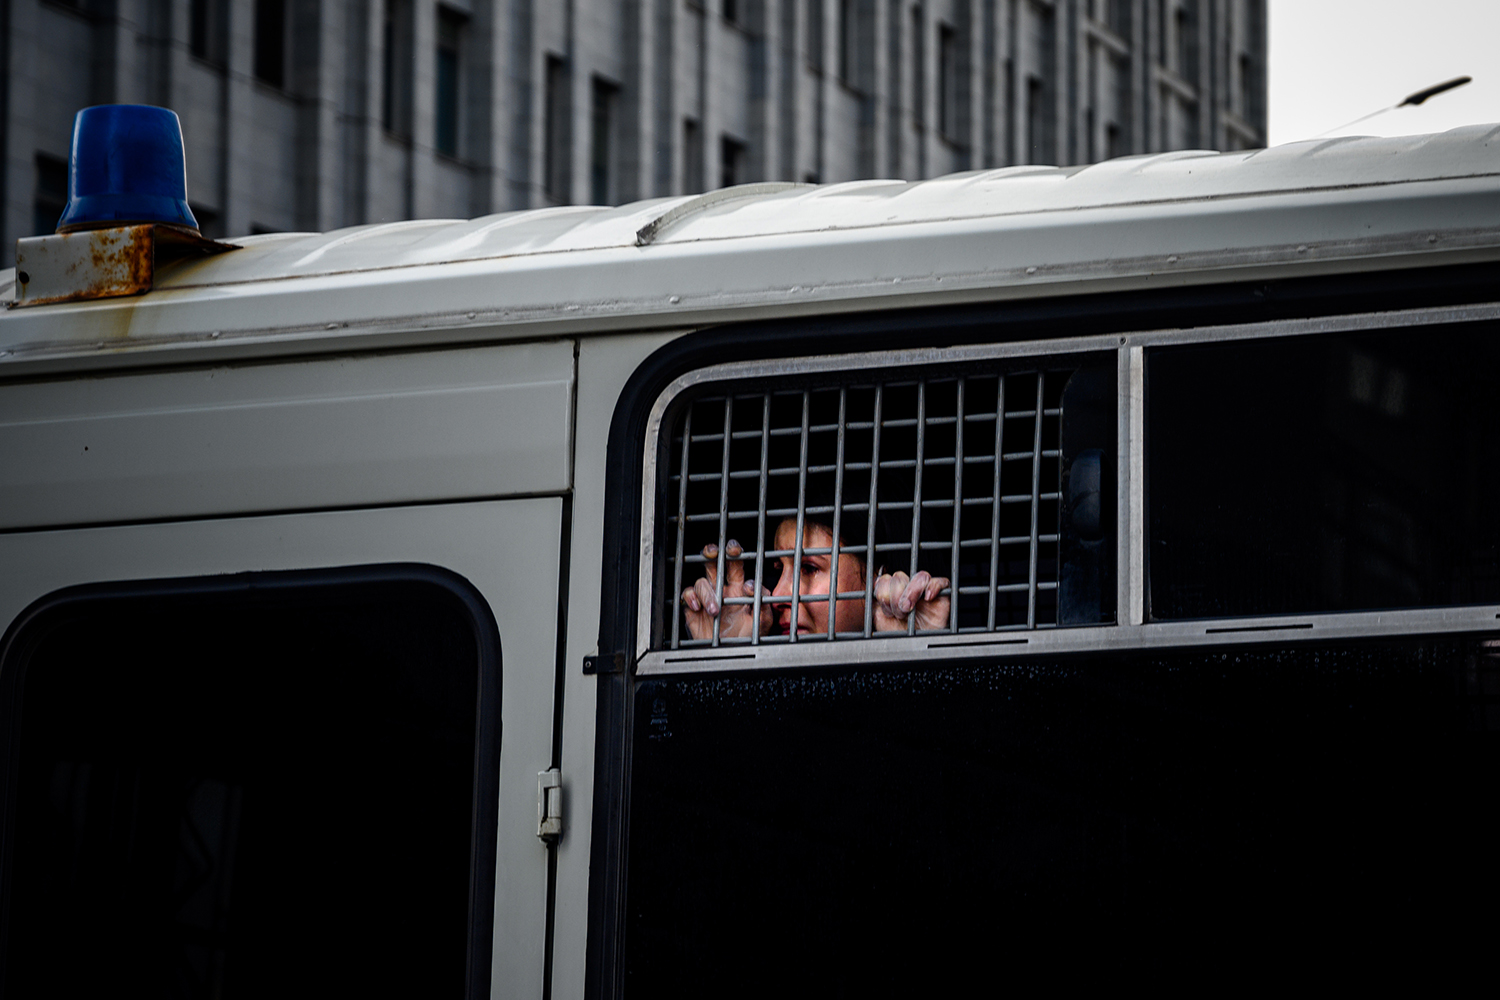 A detained supporter of Ivan Safronov—a former journalist and aide to the head of Russia's space agency Roscosmos—looks out from inside a police bus in central Moscow on July 7. Safronov was detained the same day on charges of treason for divulging state military secrets, authorities said. DIMITAR DILKOFF/AFP via Getty Images